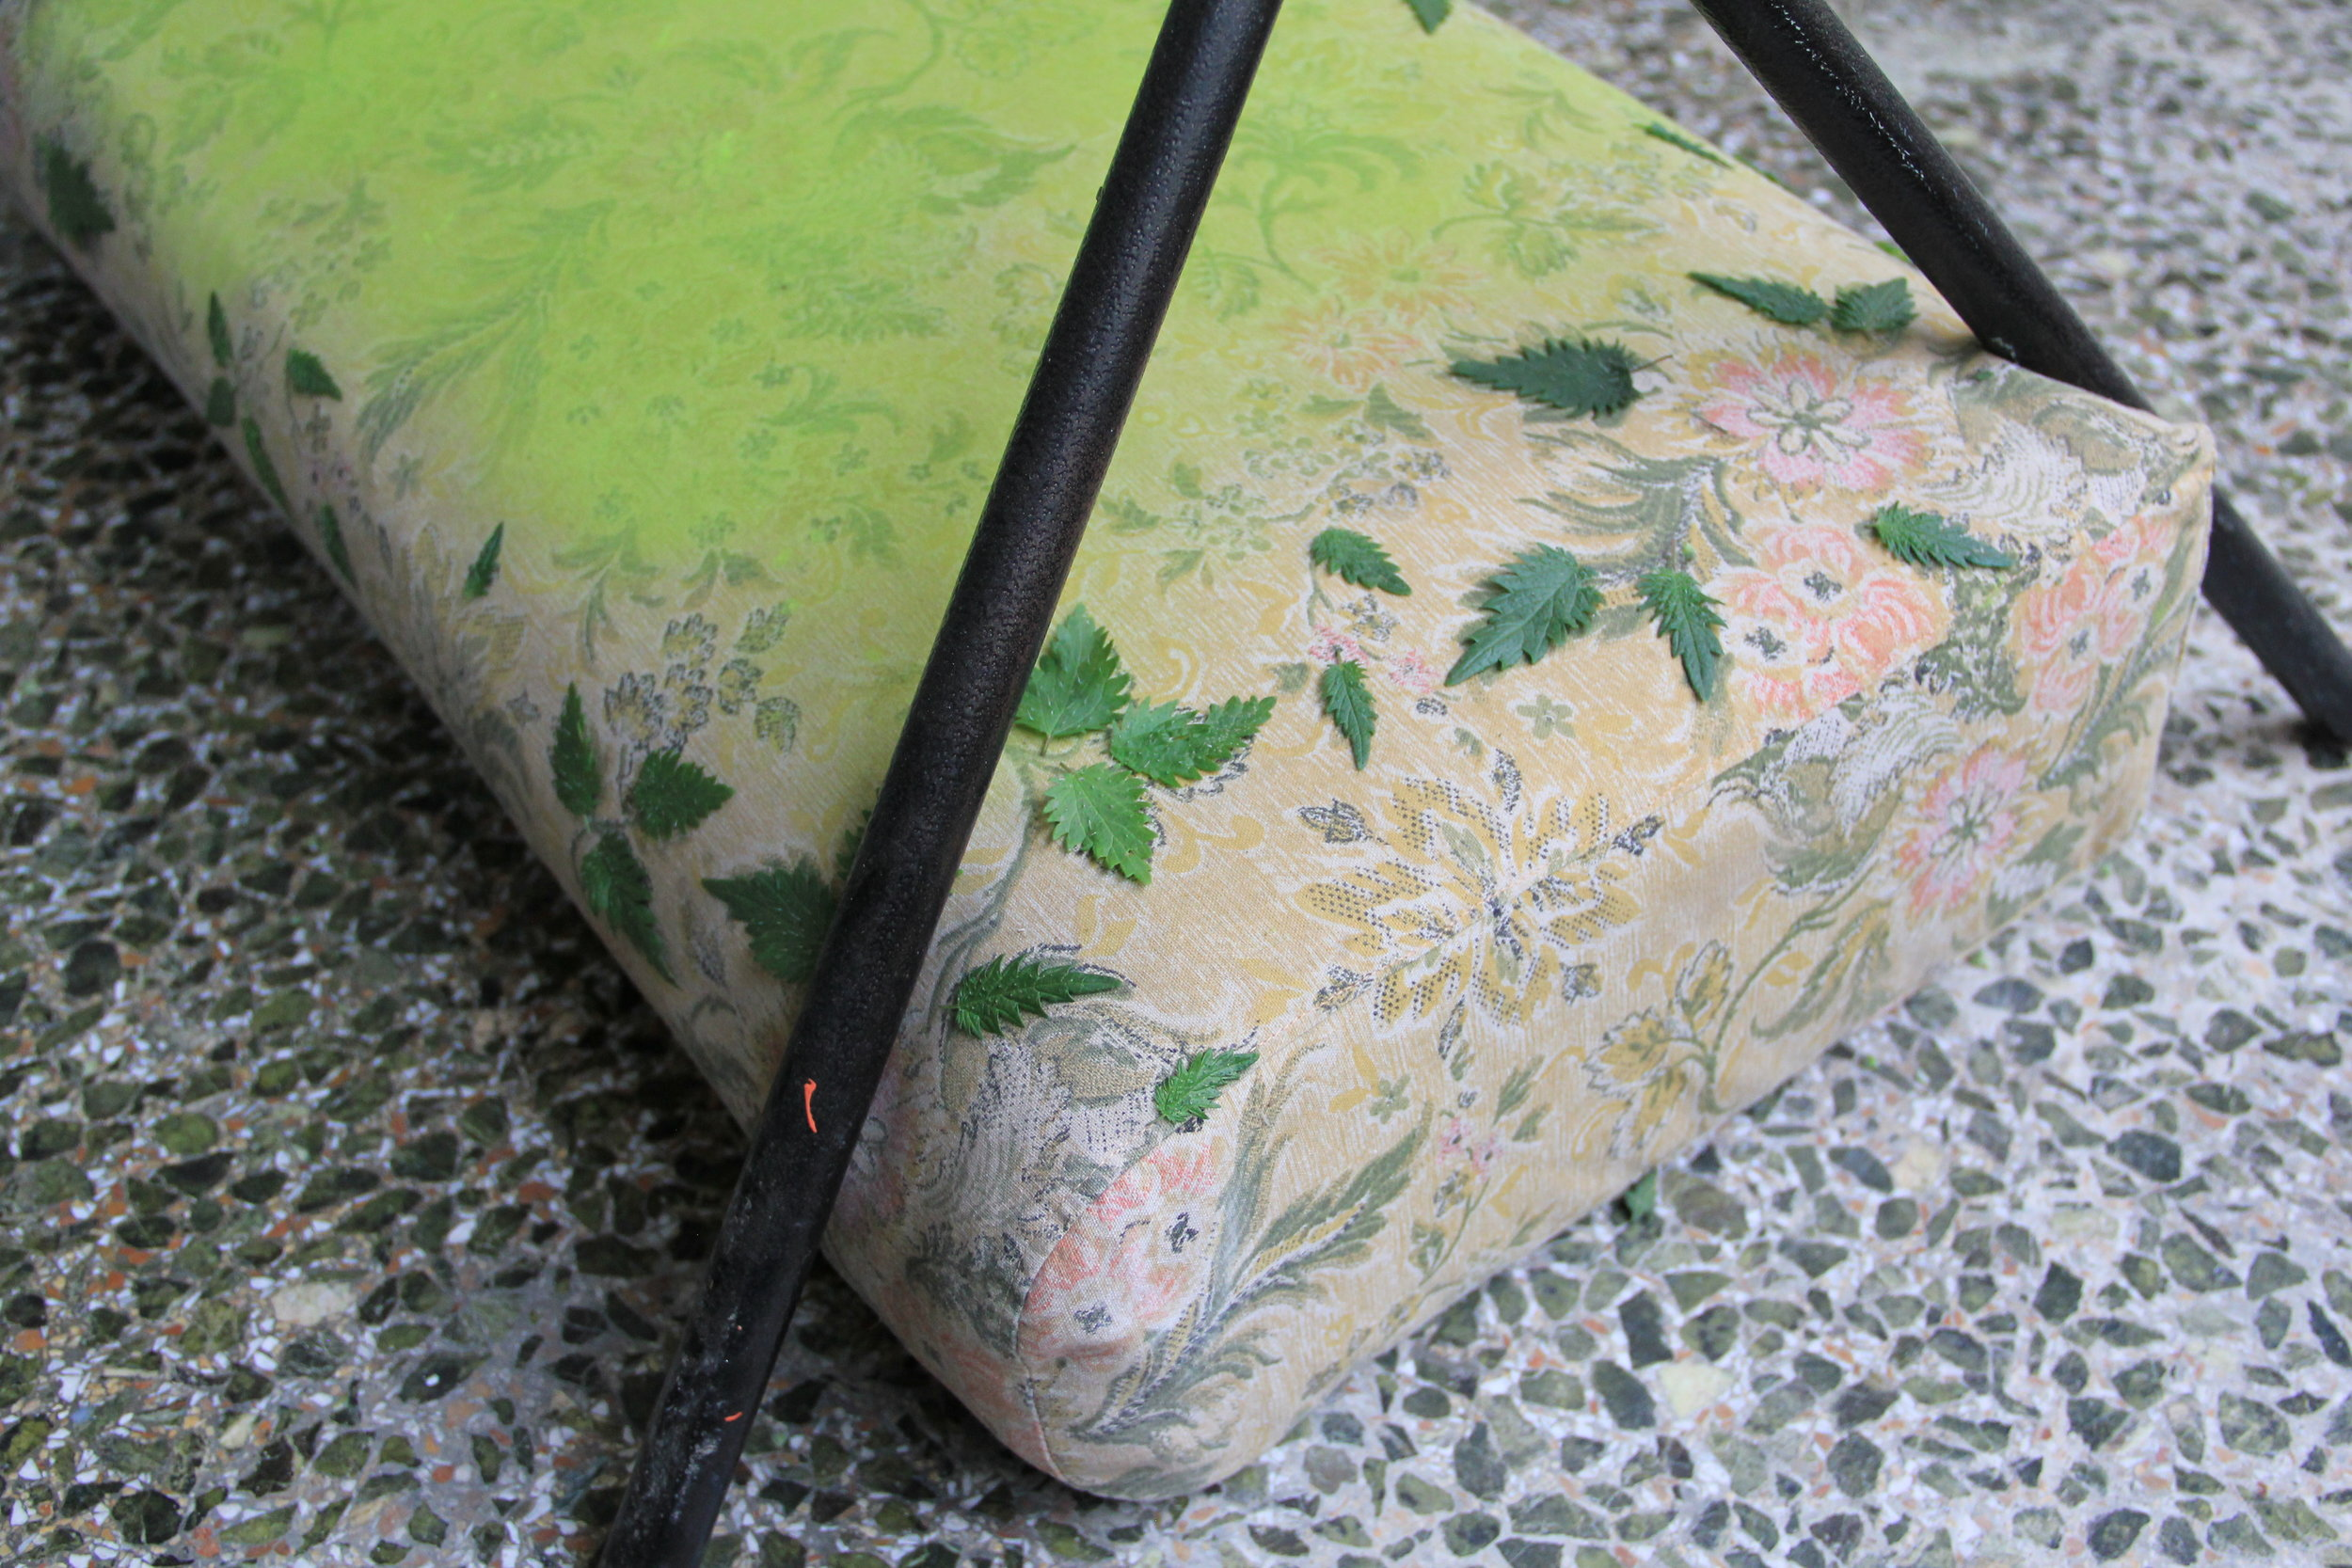 Detail: Leaves of roman nettles on manufactured cushion, spray paint, barbecue metal structure